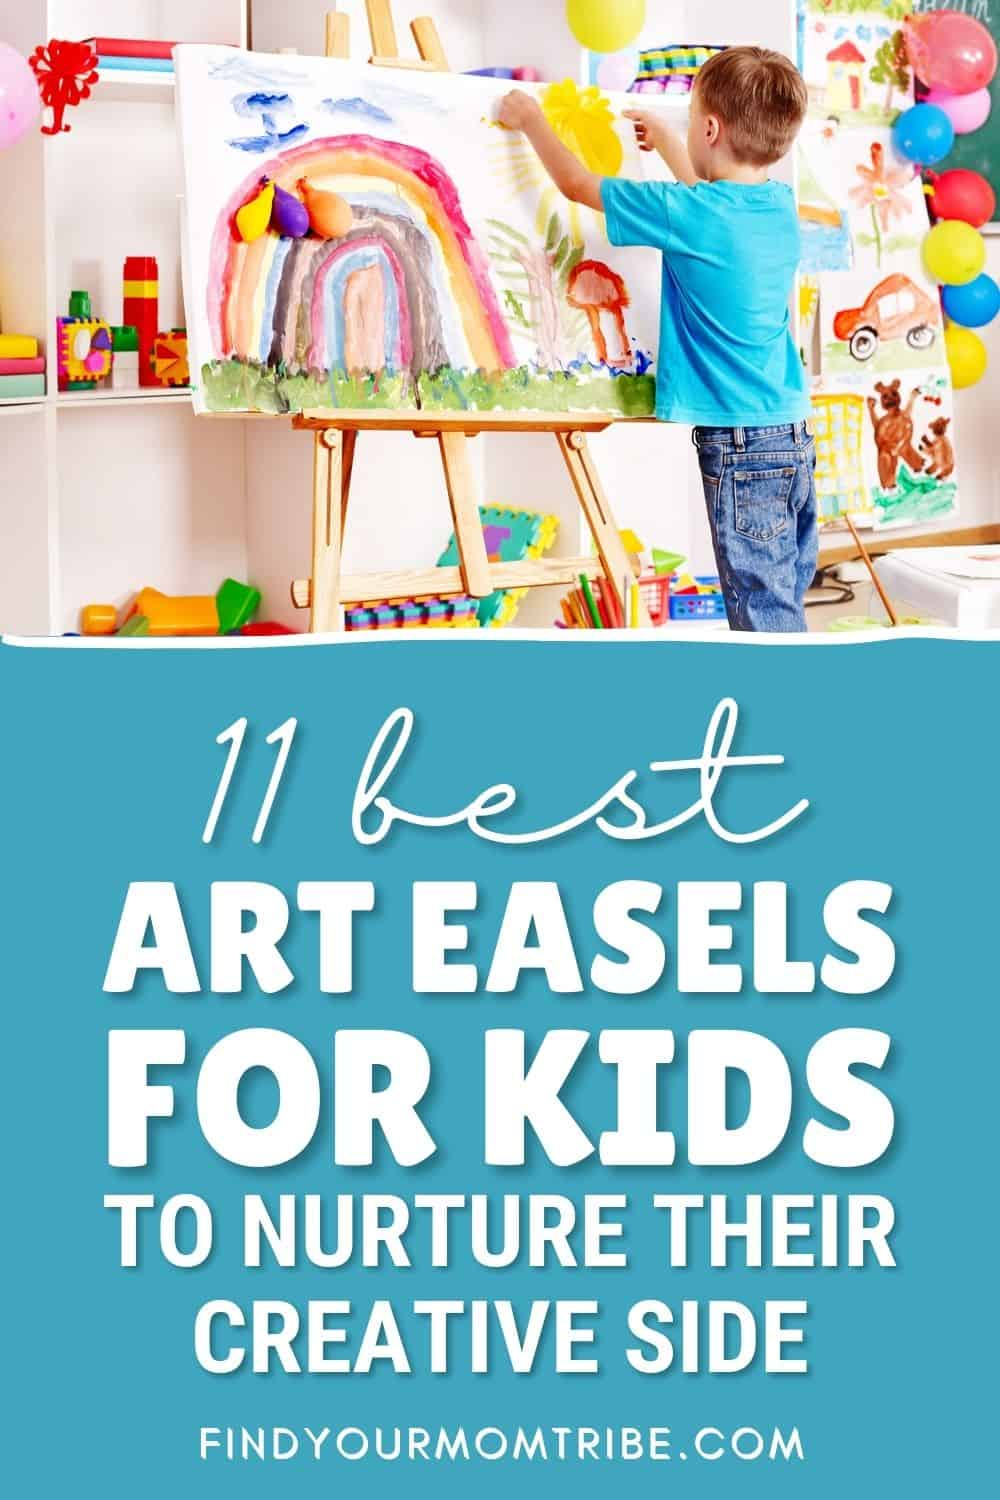 11 Best Art Easels For Kids To Nurture Their Creative Side In 2021 Pinterest